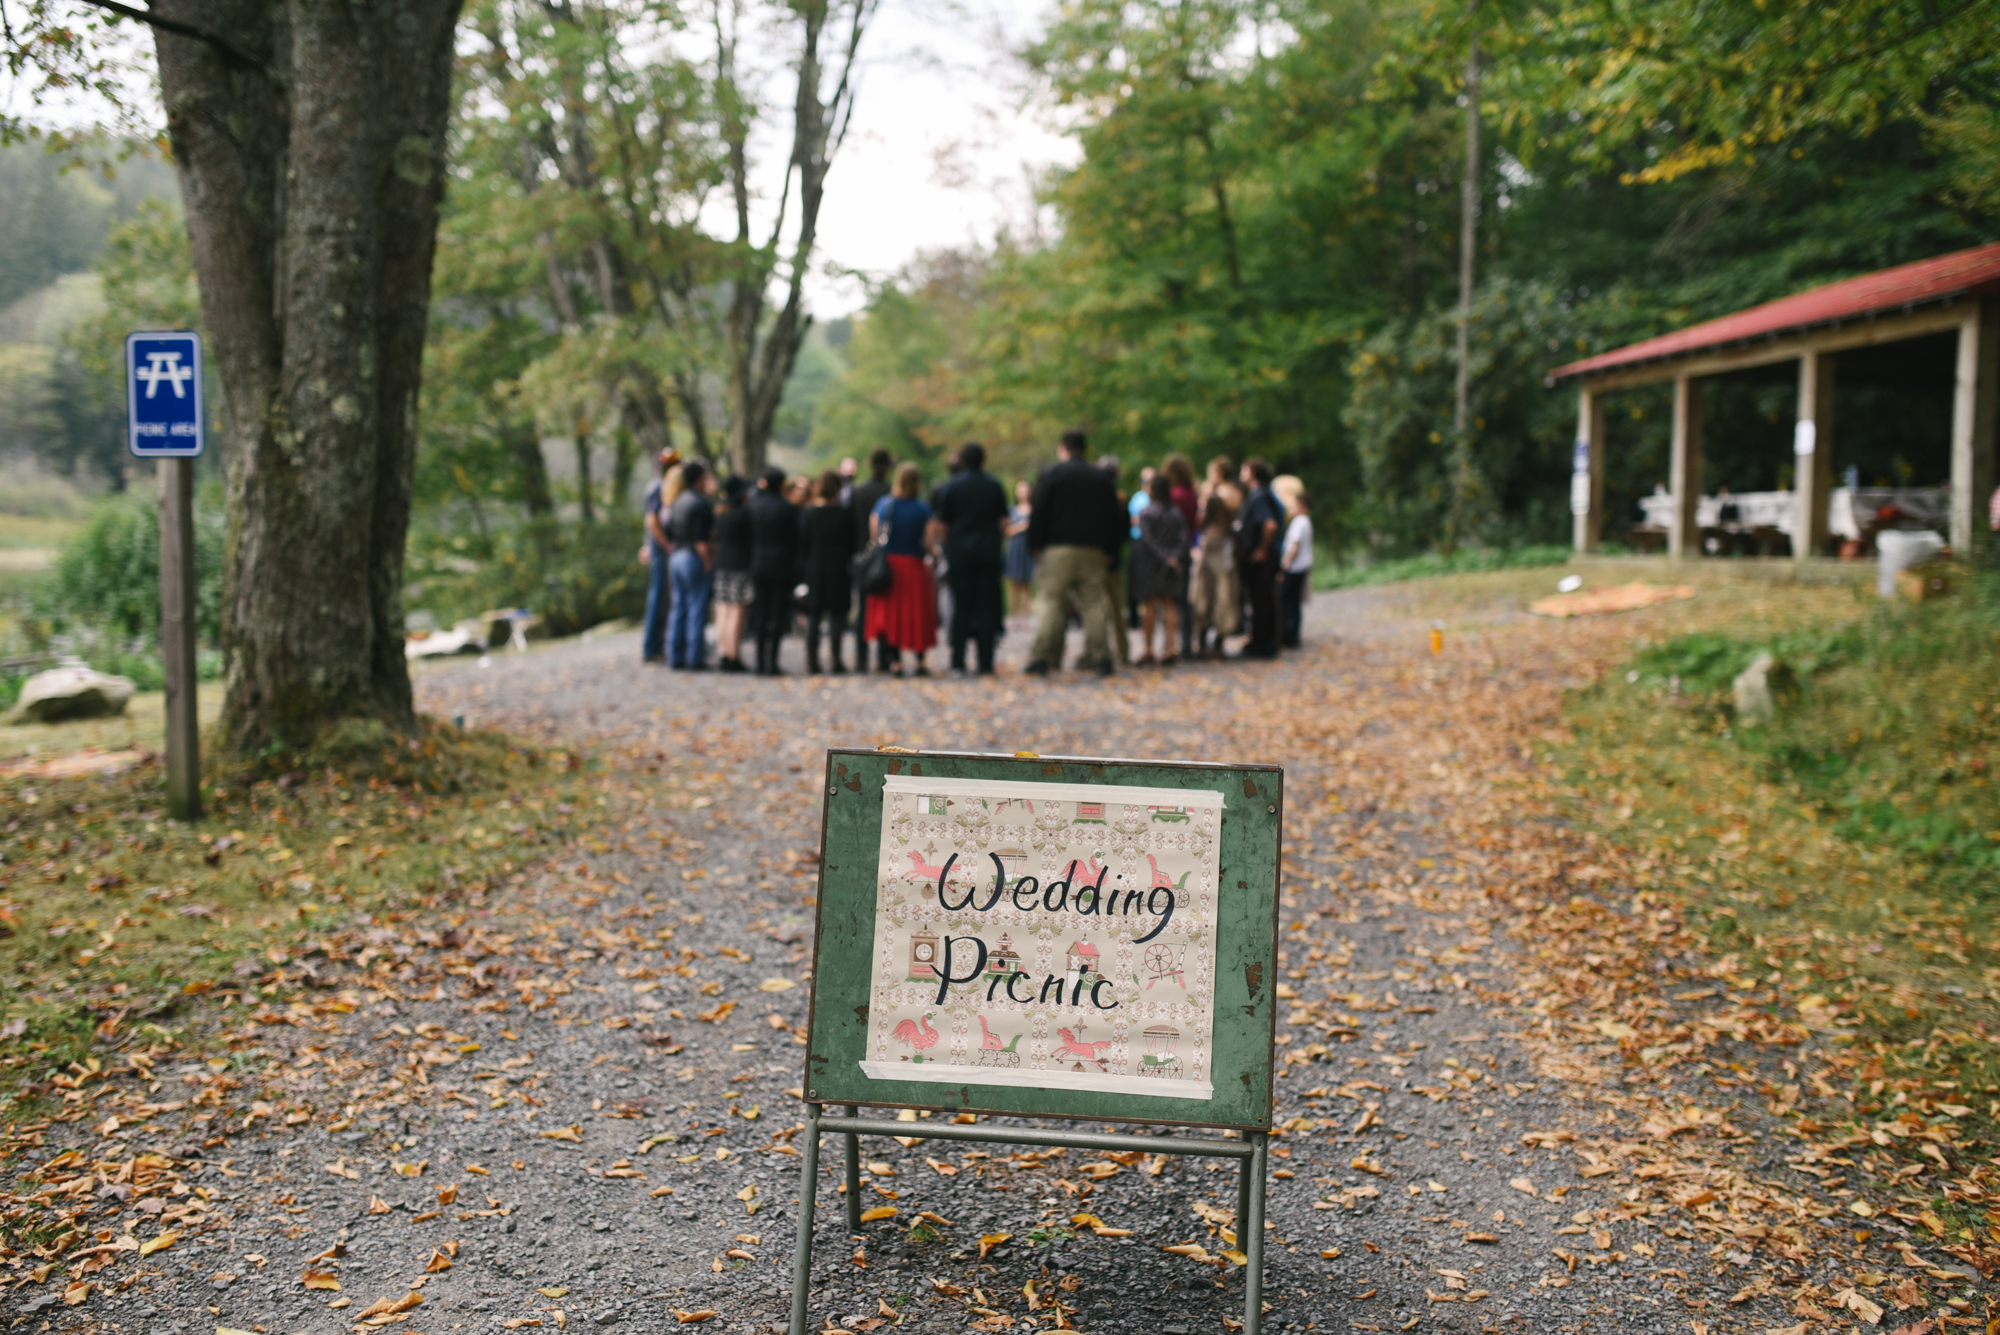 Mountain Wedding, Outdoors, Rustic, West Virginia, Maryland Wedding Photographer, DIY, Casual, Signage for Wedding Picnic, Guests gathered outside